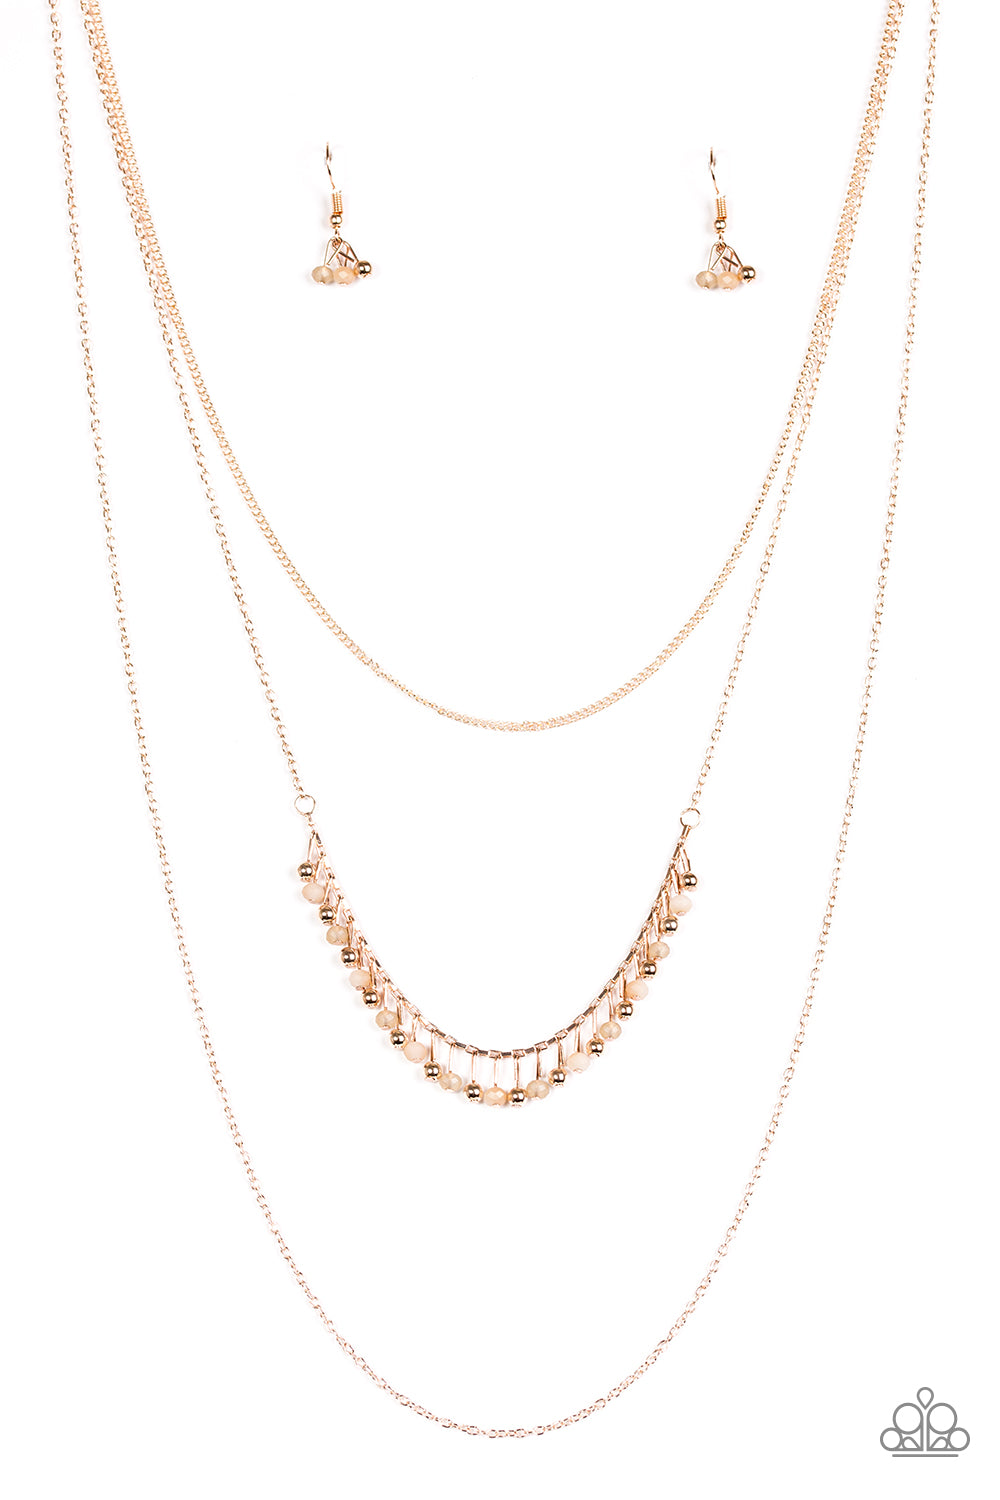 five-dollar-jewelry-twinkly-troves-rose-gold-paparazzi-accessories